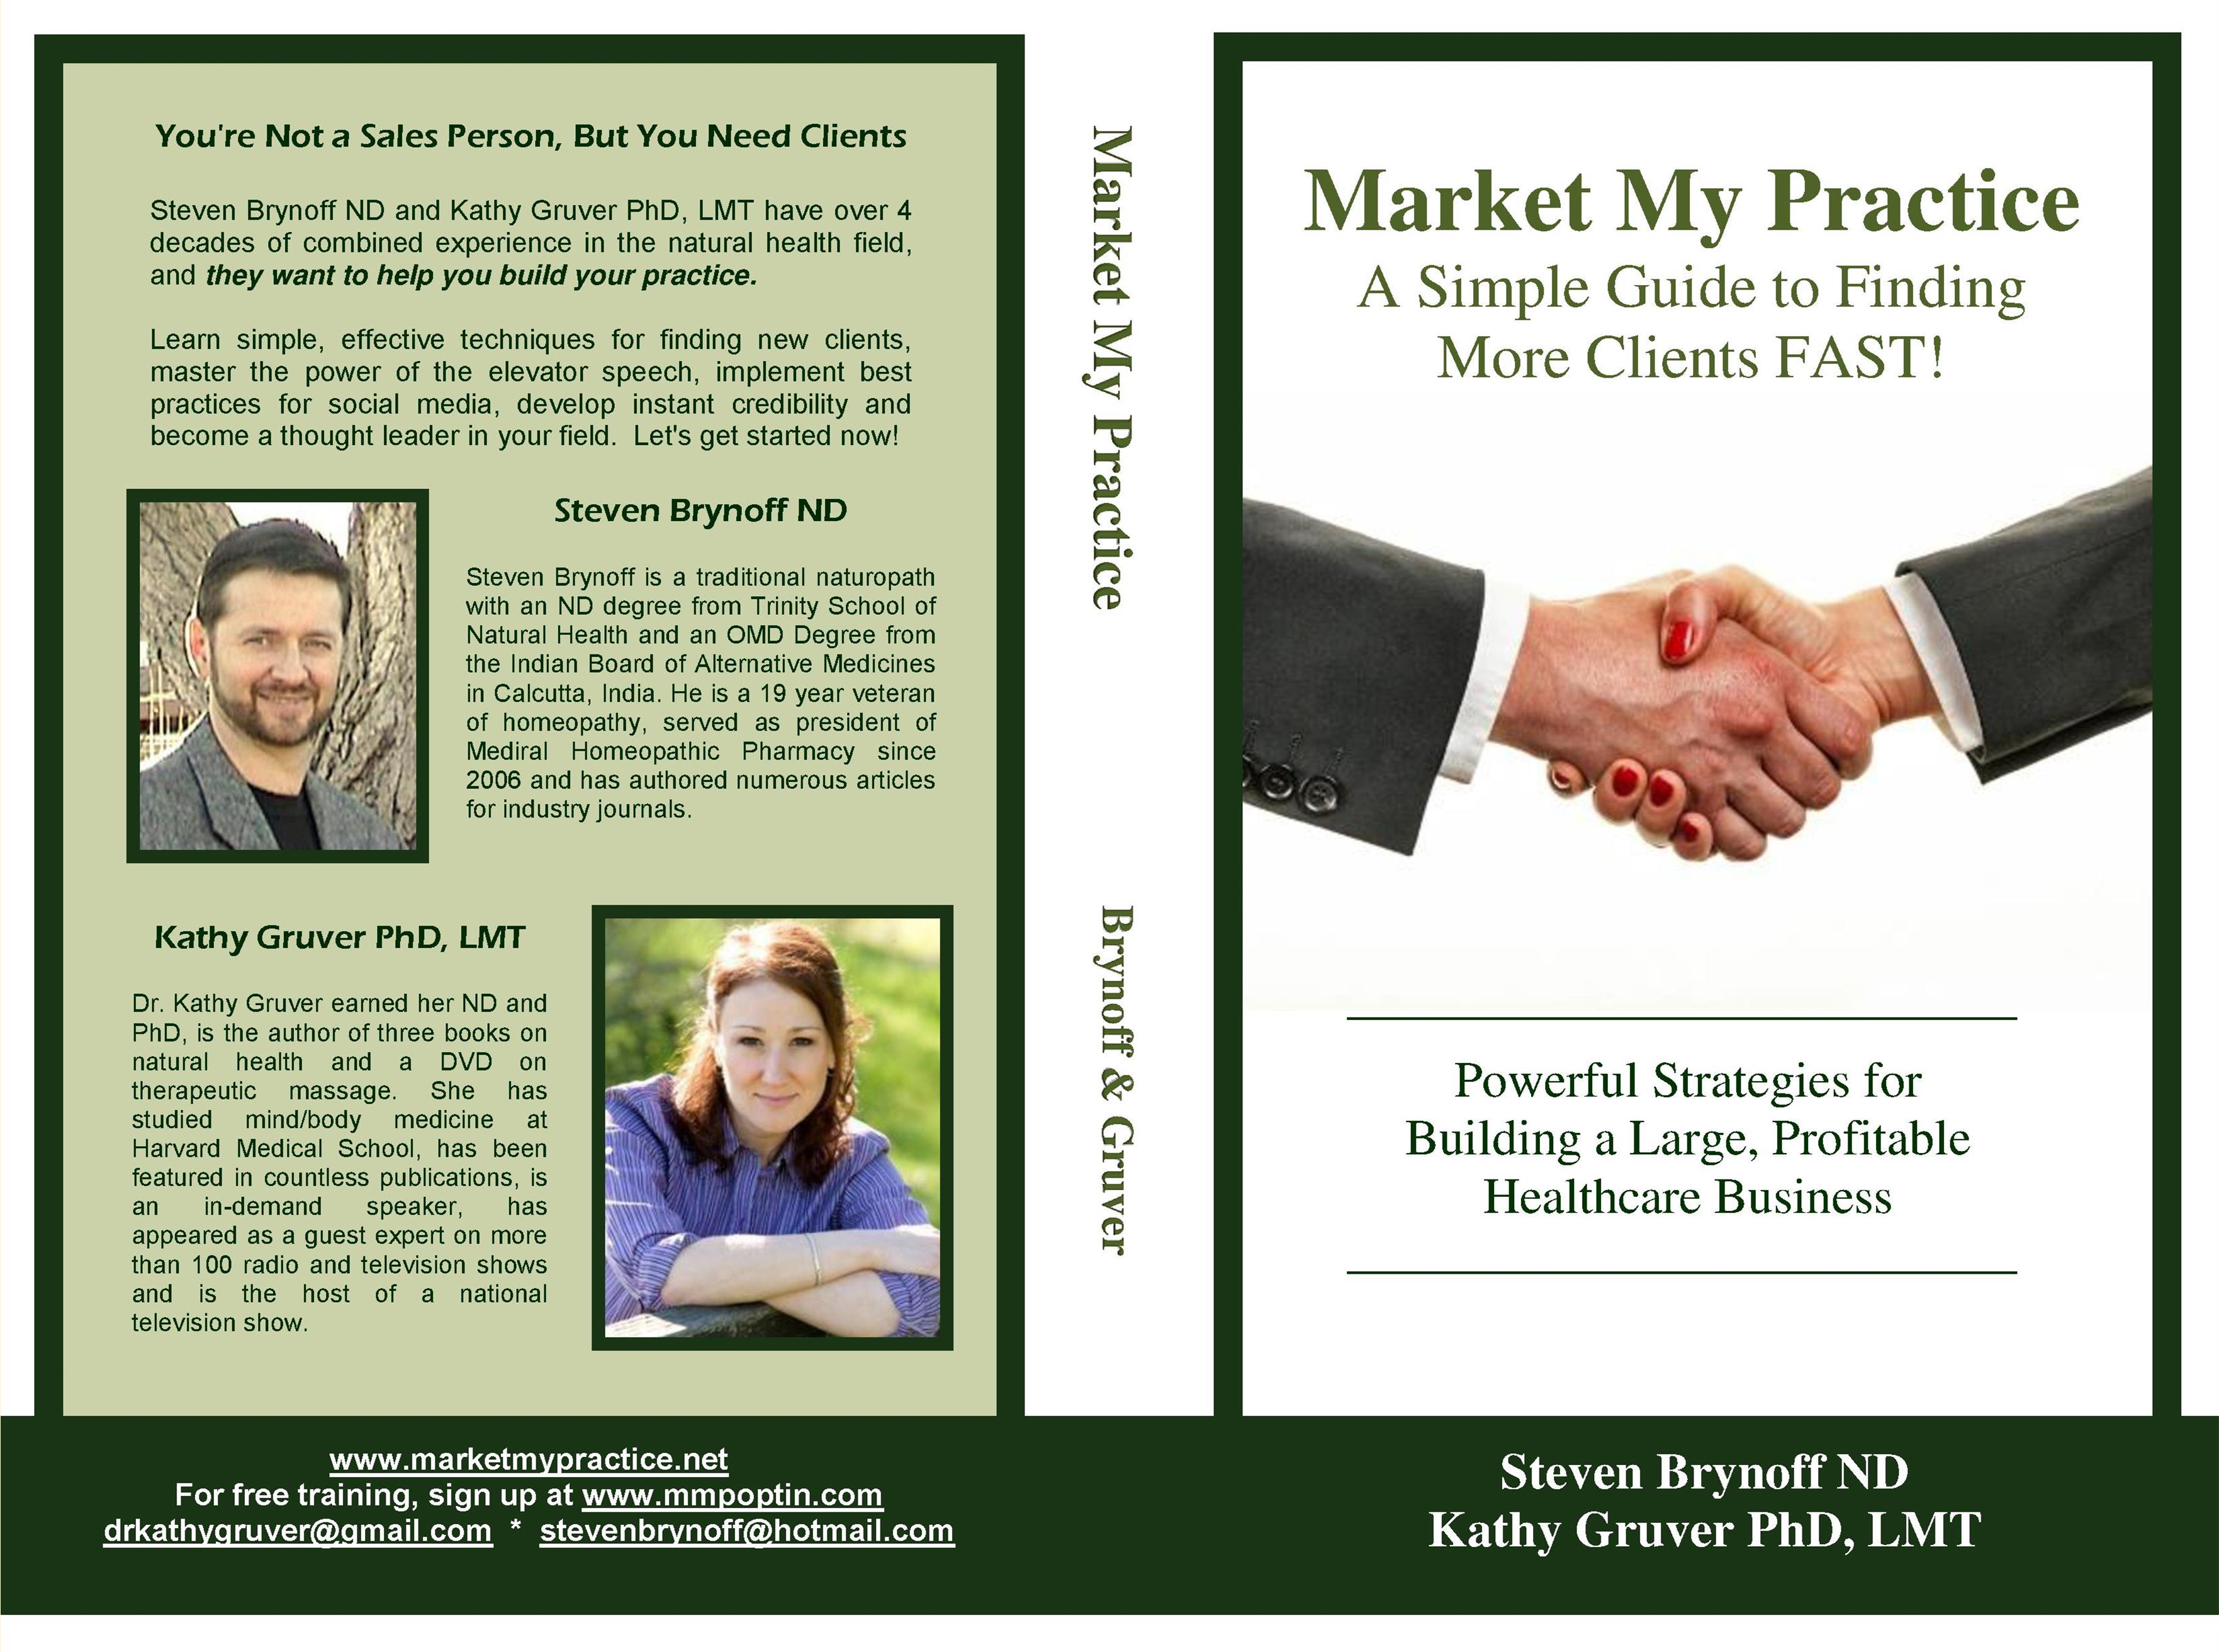 Market My Practice cover image